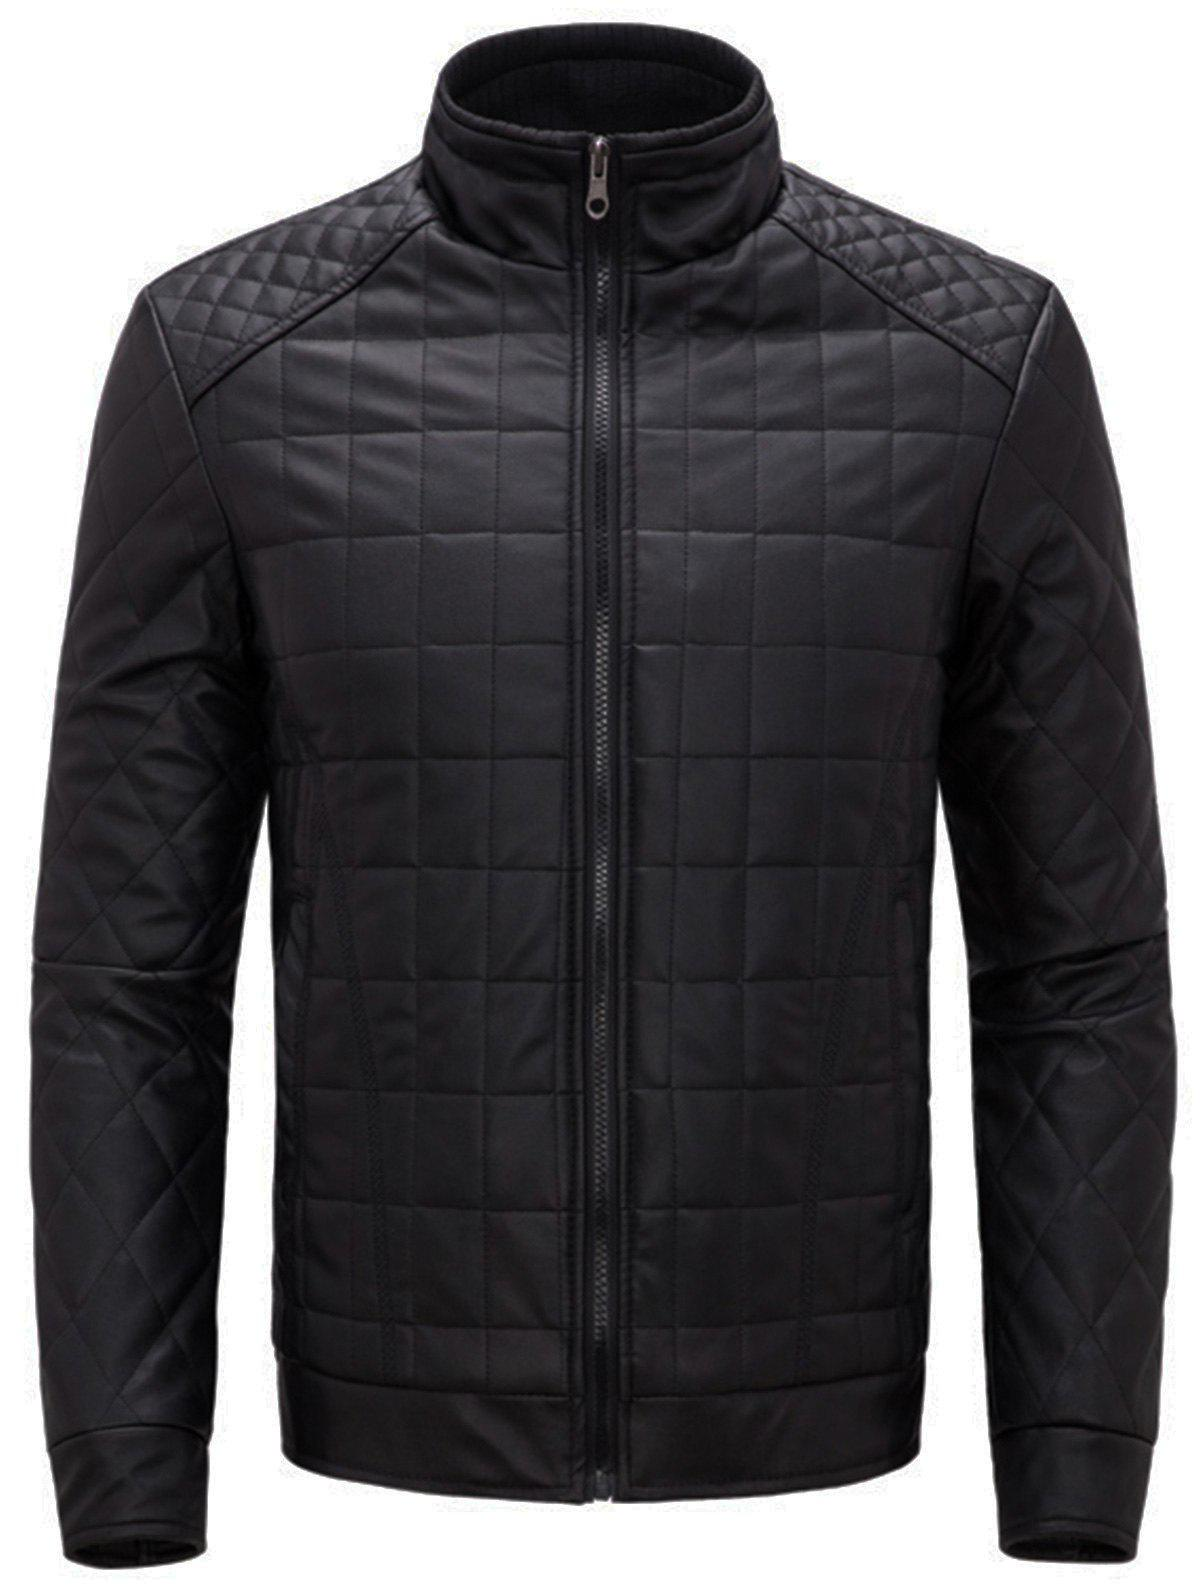 Checkered Grid Quilted Faux Leather Jacket - BLACK 2XL